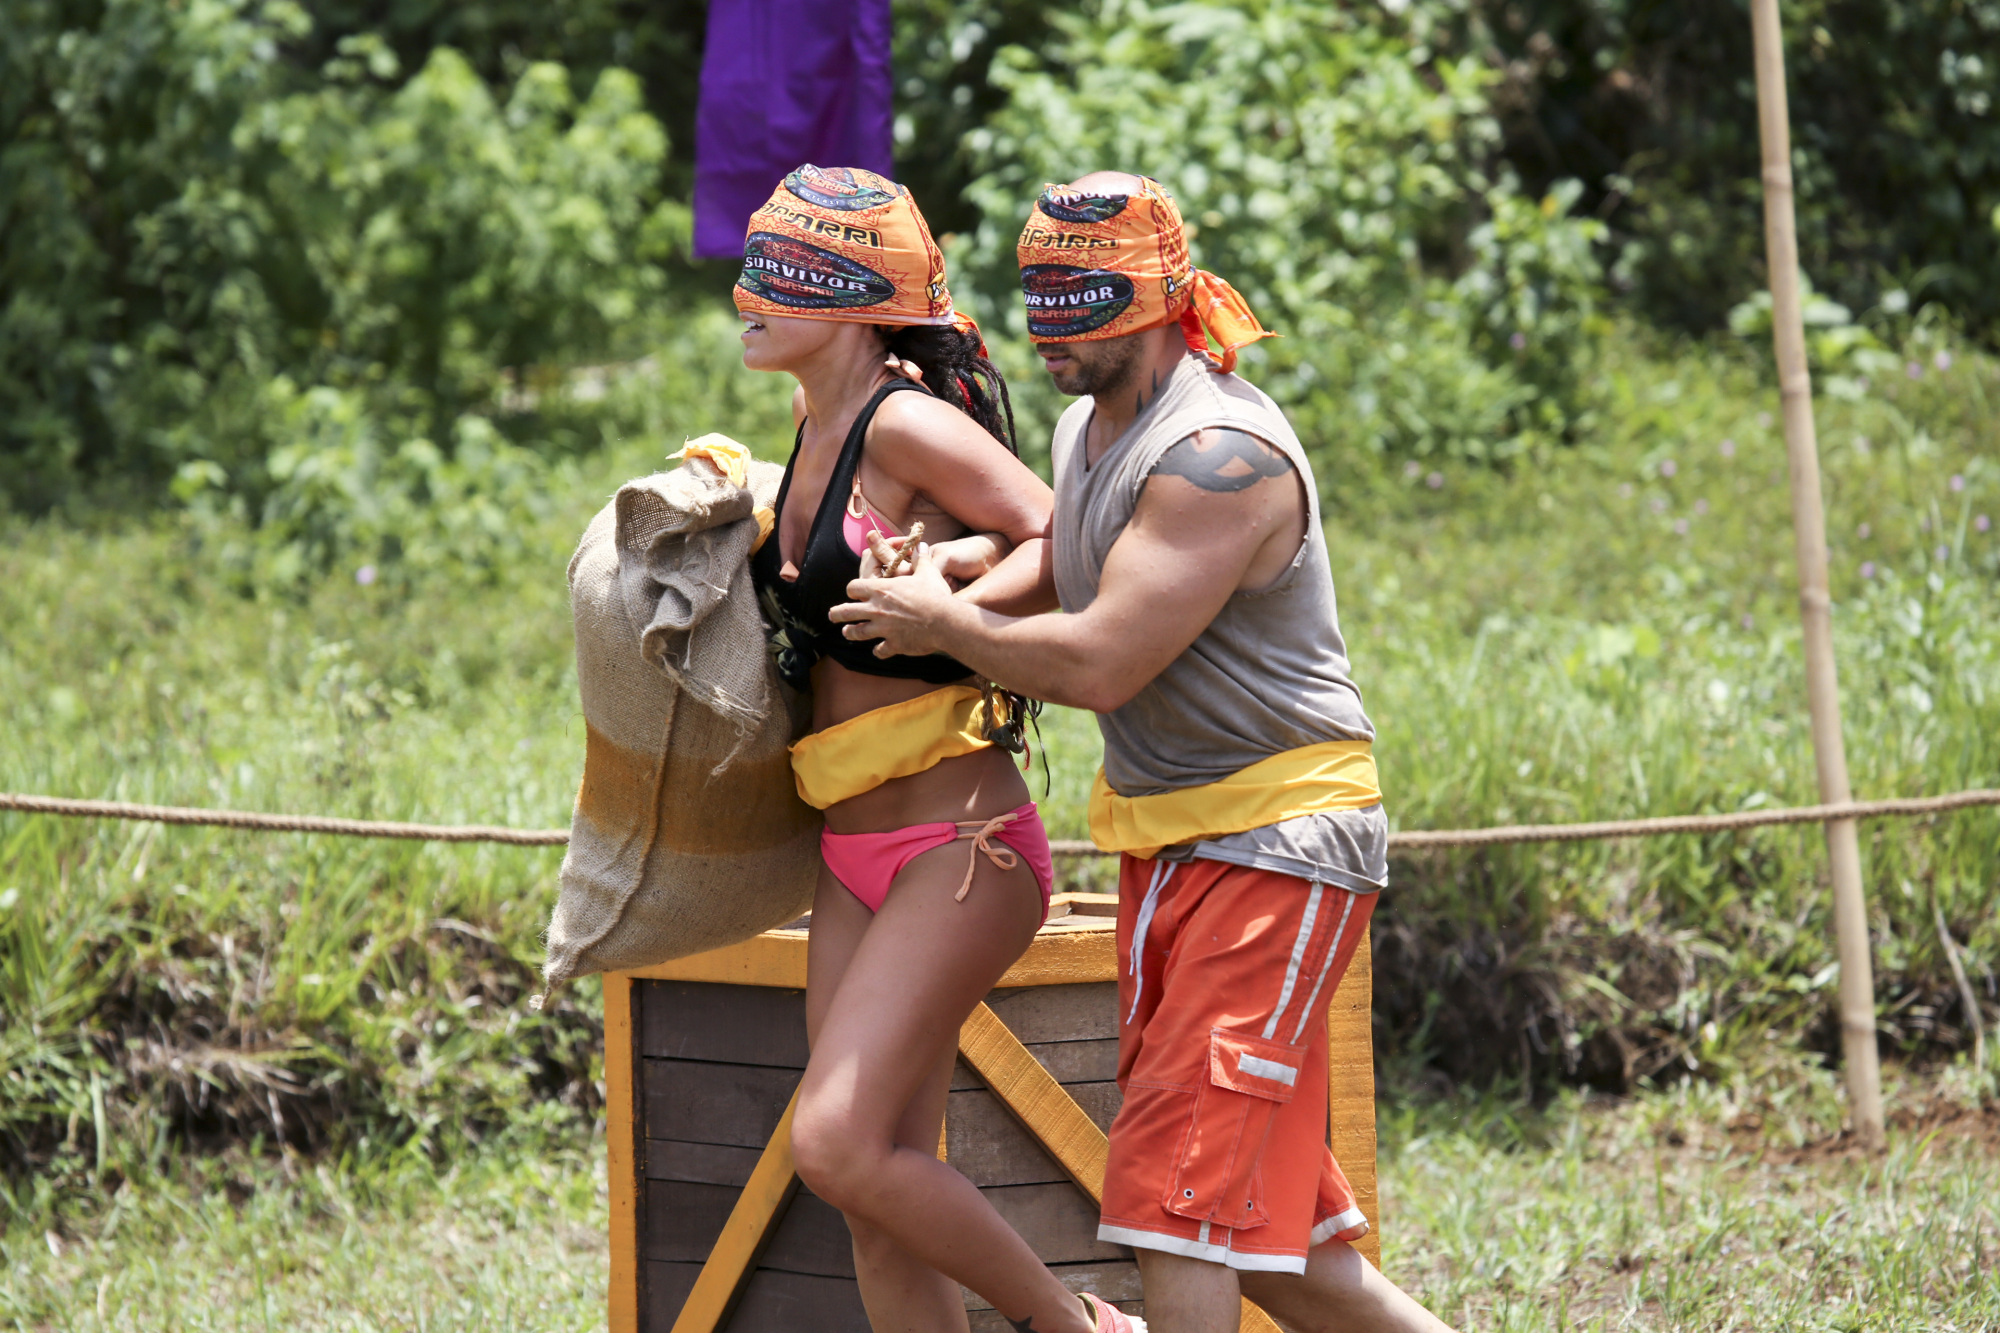 Lindsey and Tony in Season 28 Episode 3